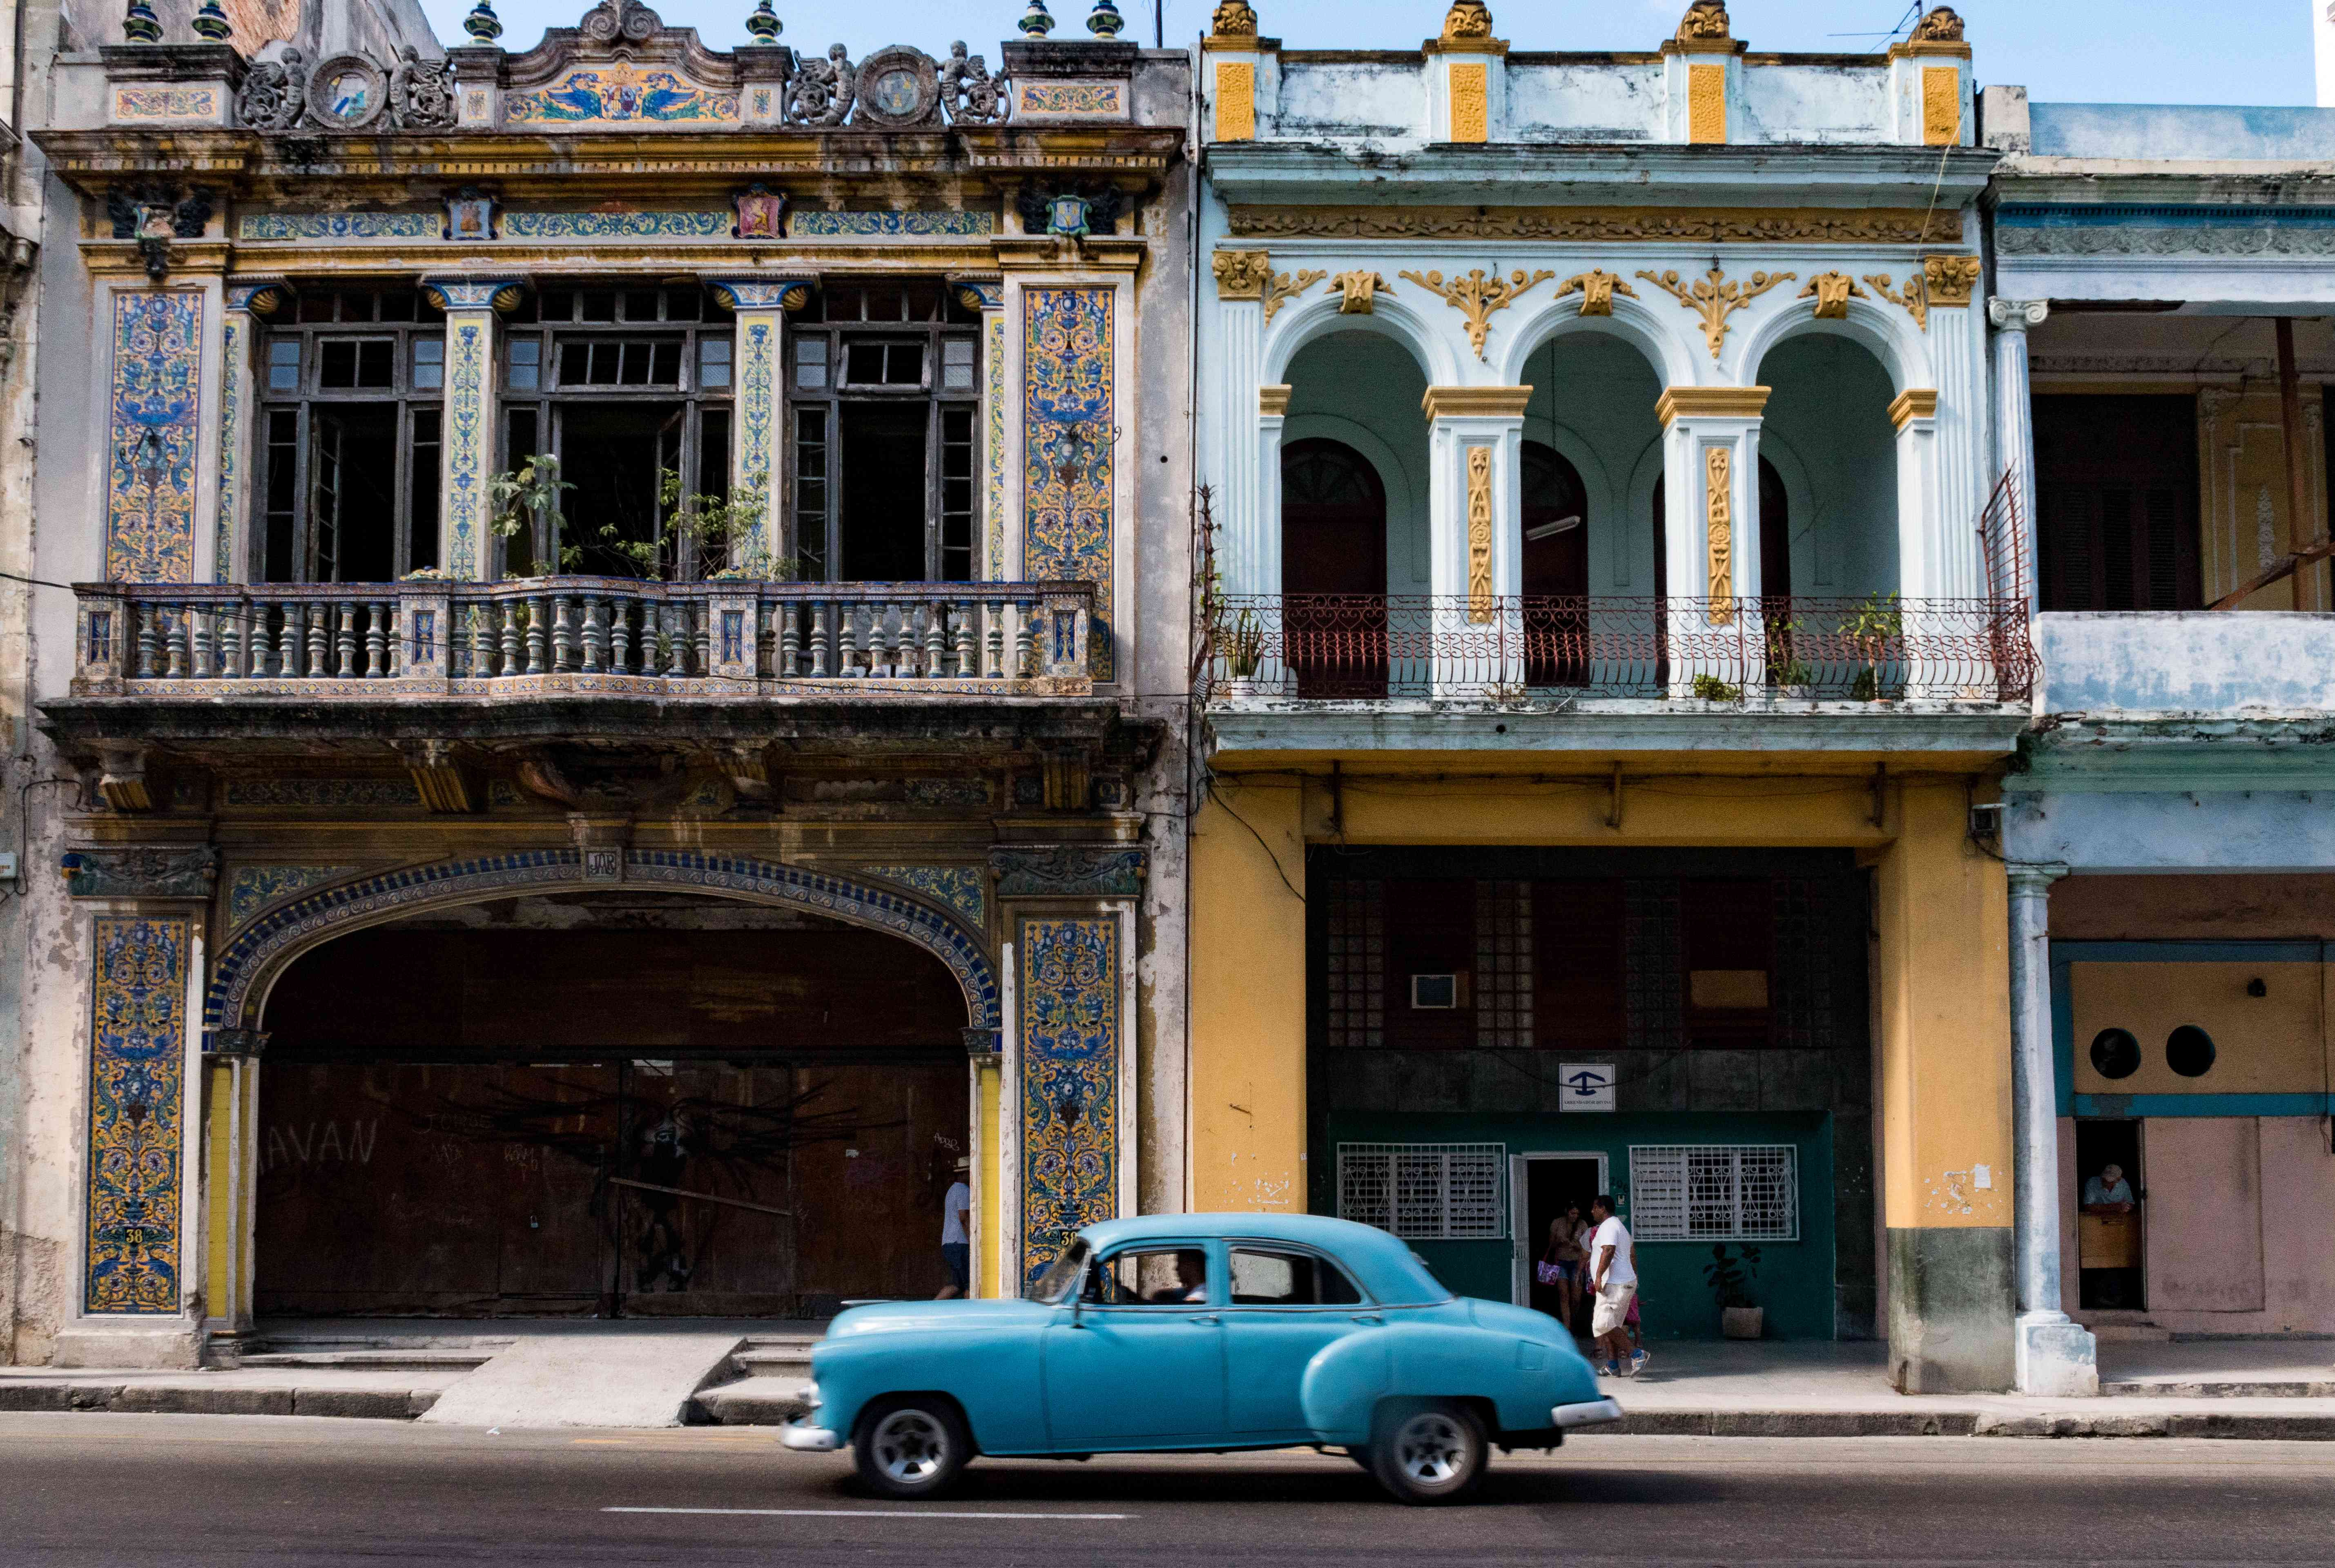 A classic car driving by an ornate building in Old Havanna